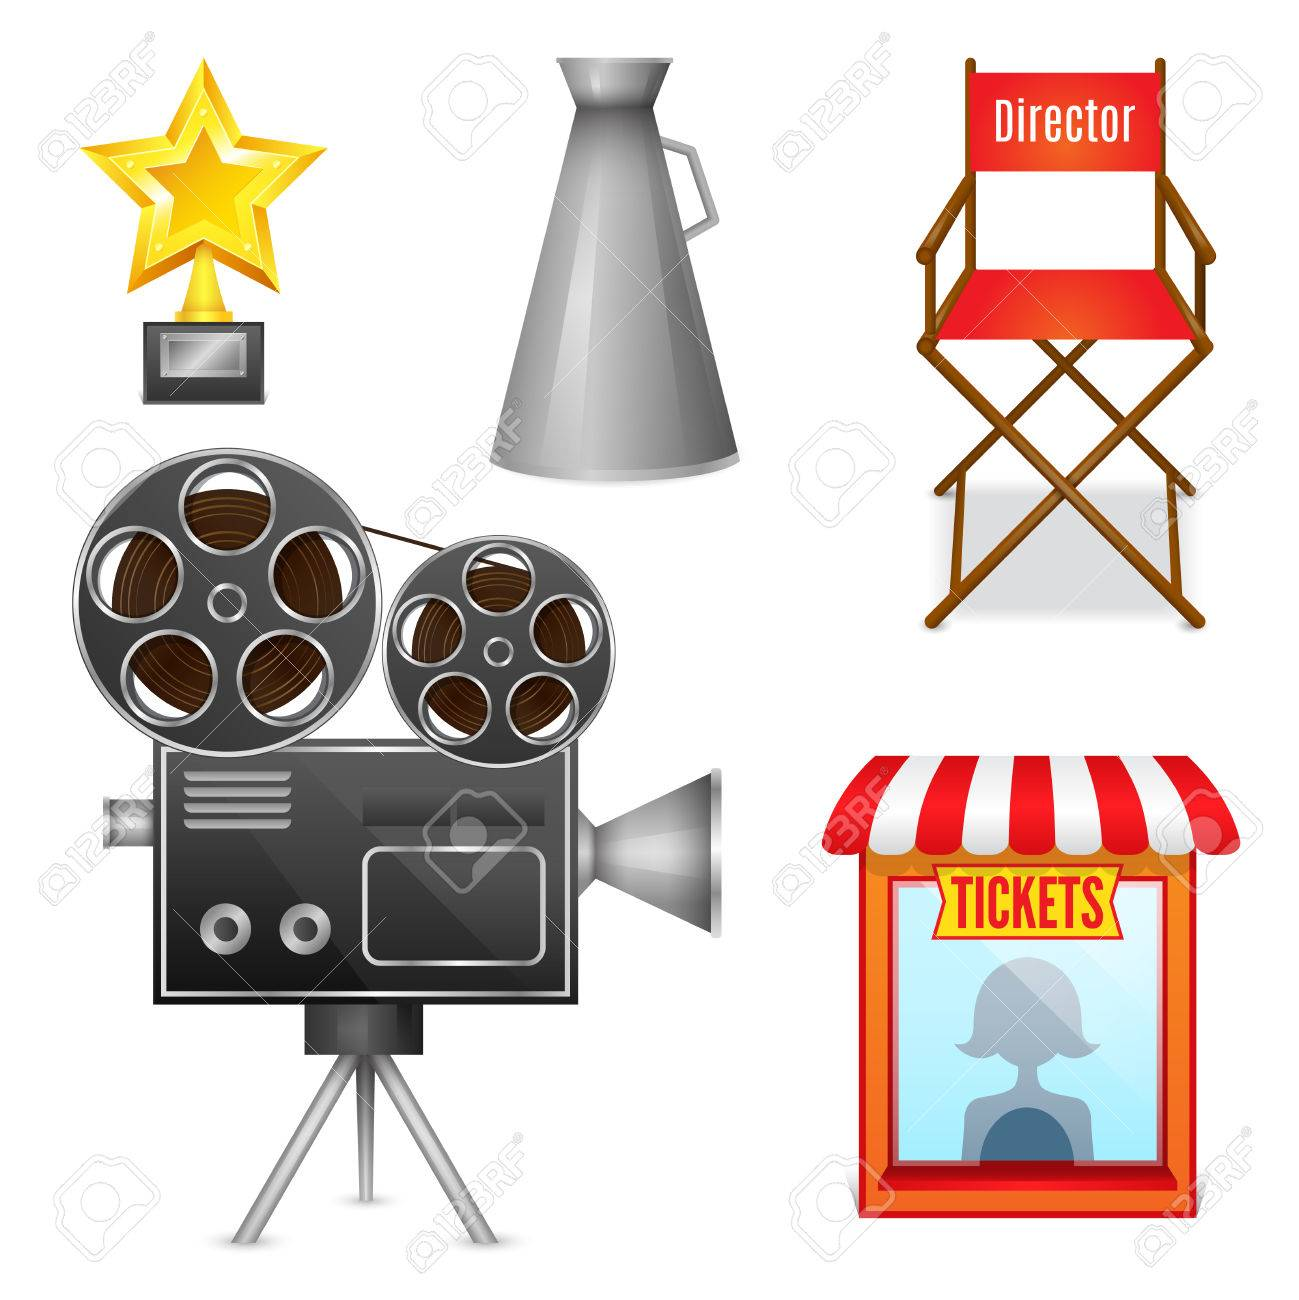 chair design icons bungie cord cinema entertainment decorative set of camera film projector ticket booth and director elements